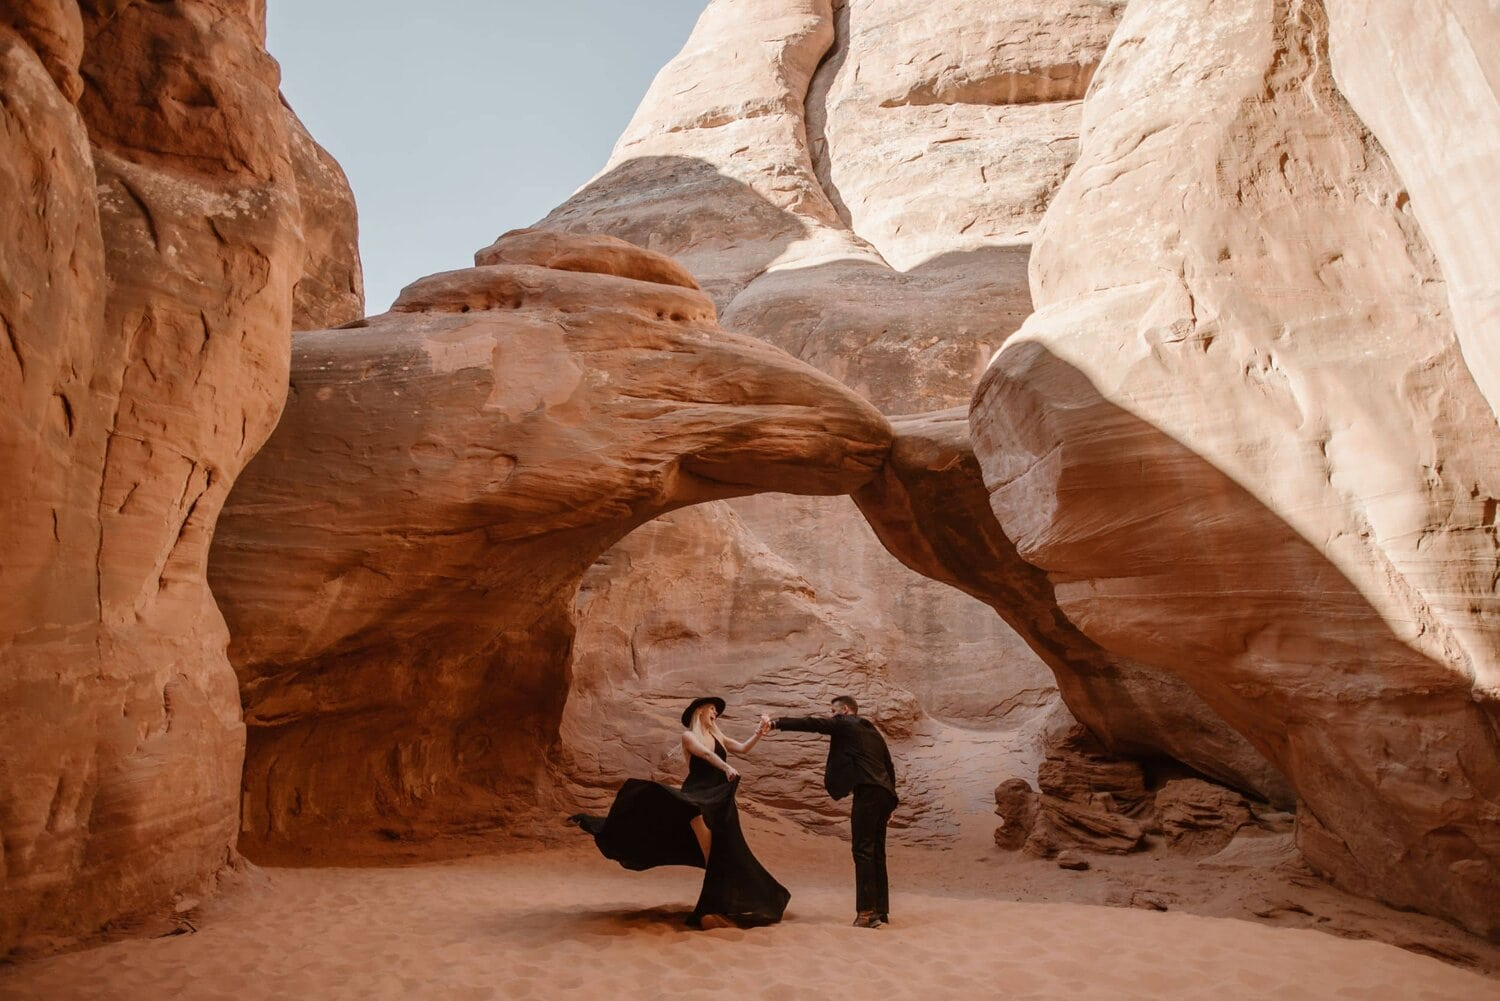 Bride and groom wear black in front of the orange arches on their wedding day.